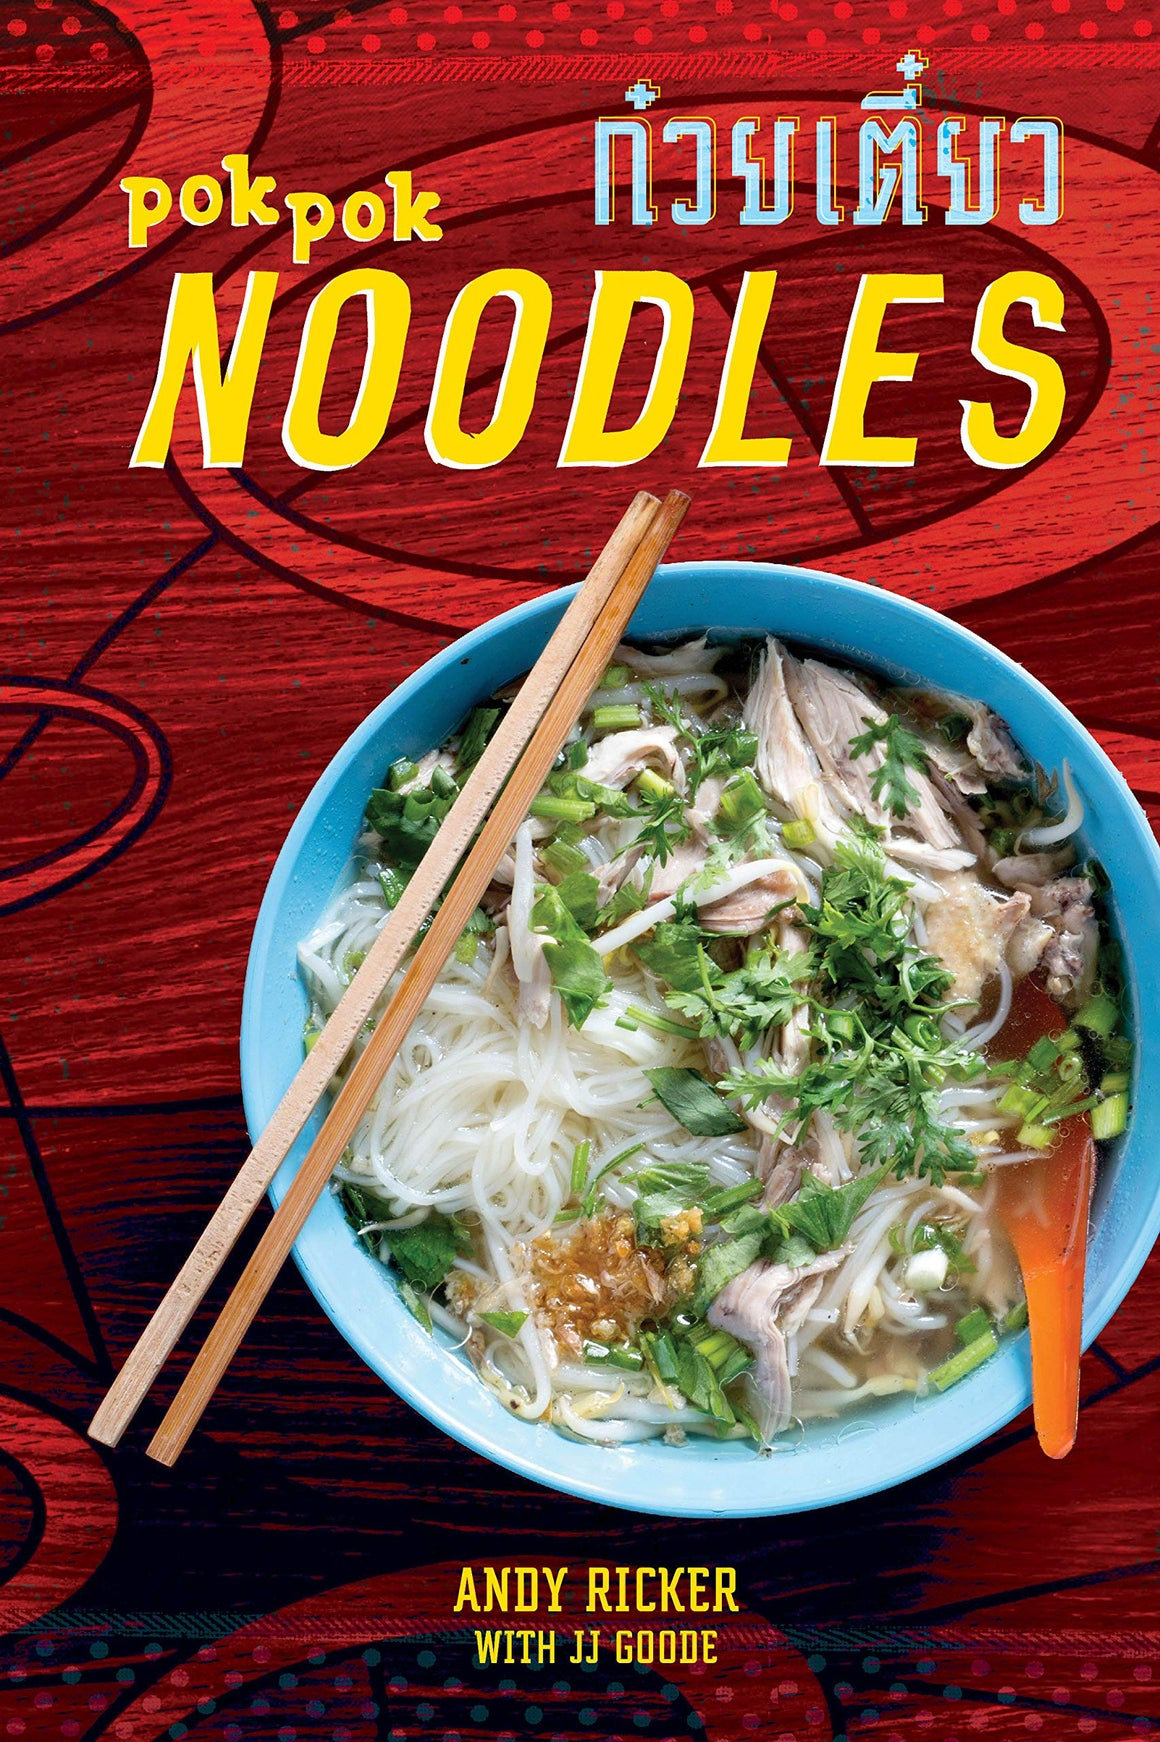 SIGNED! Andy Ricker. POK POK Noodles: Recipes from Thailand and Beyond